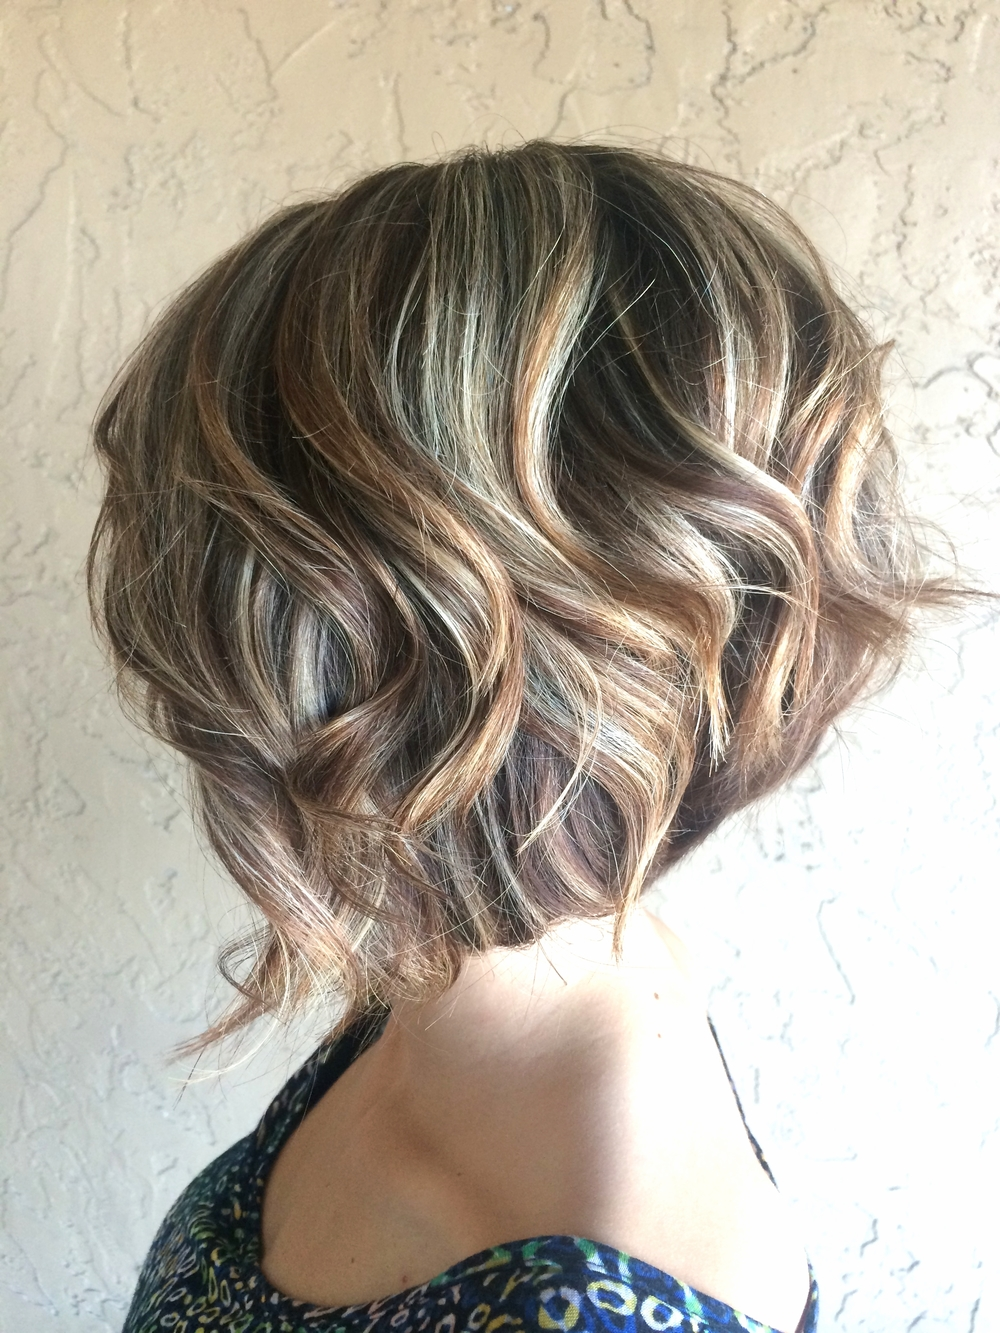 Shelby barham hair stylist hair stylist fort smith hair stylist fort smith ar hair stylist pmusecretfo Choice Image